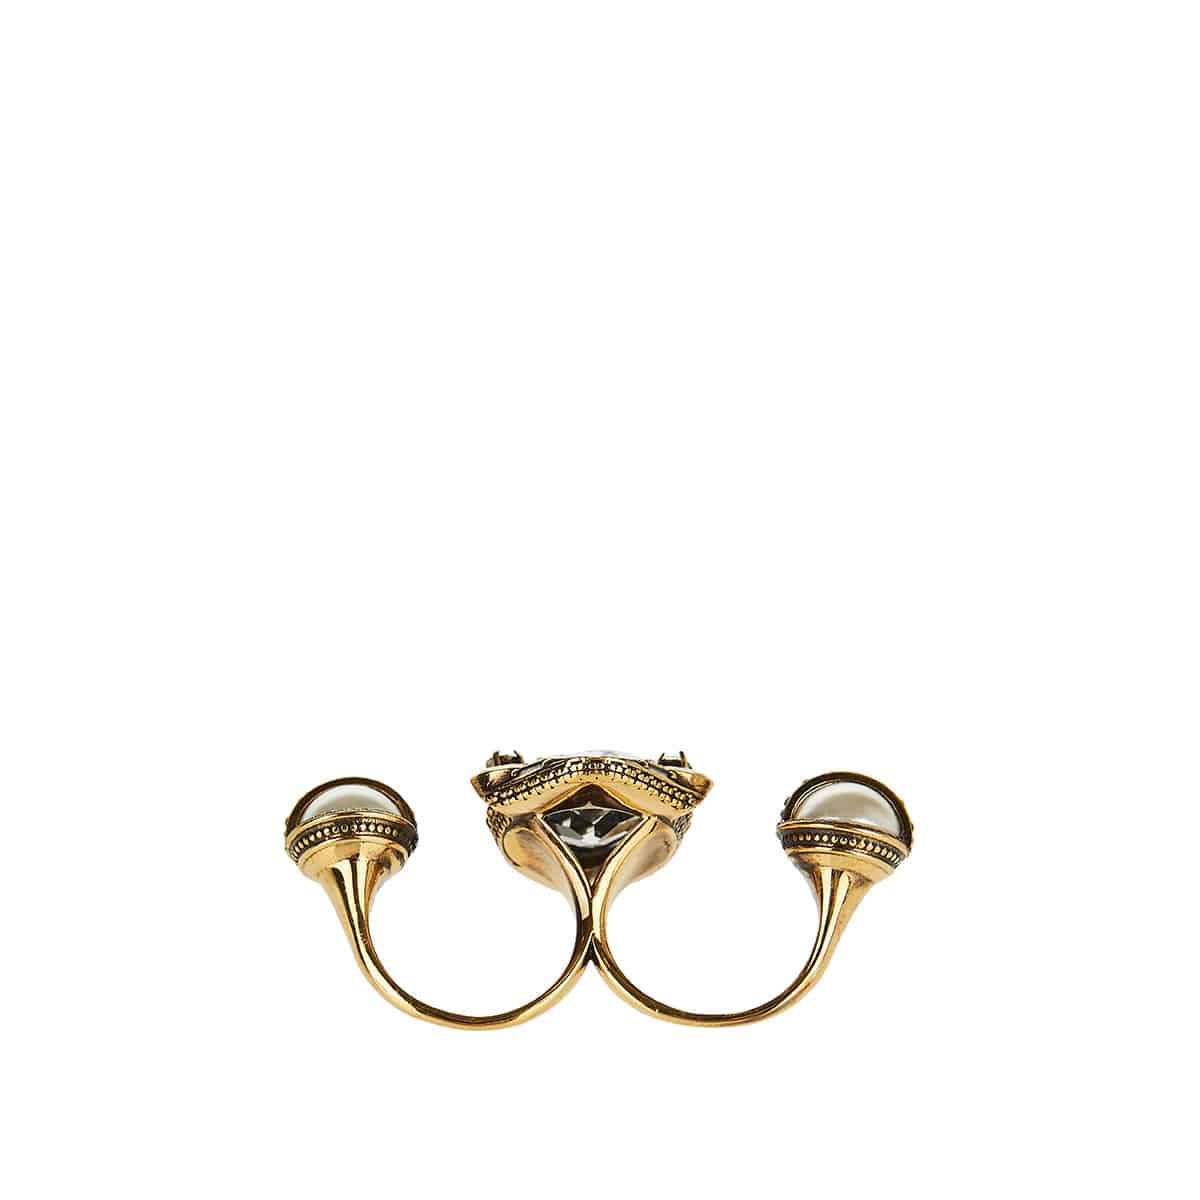 Embellished brass double ring